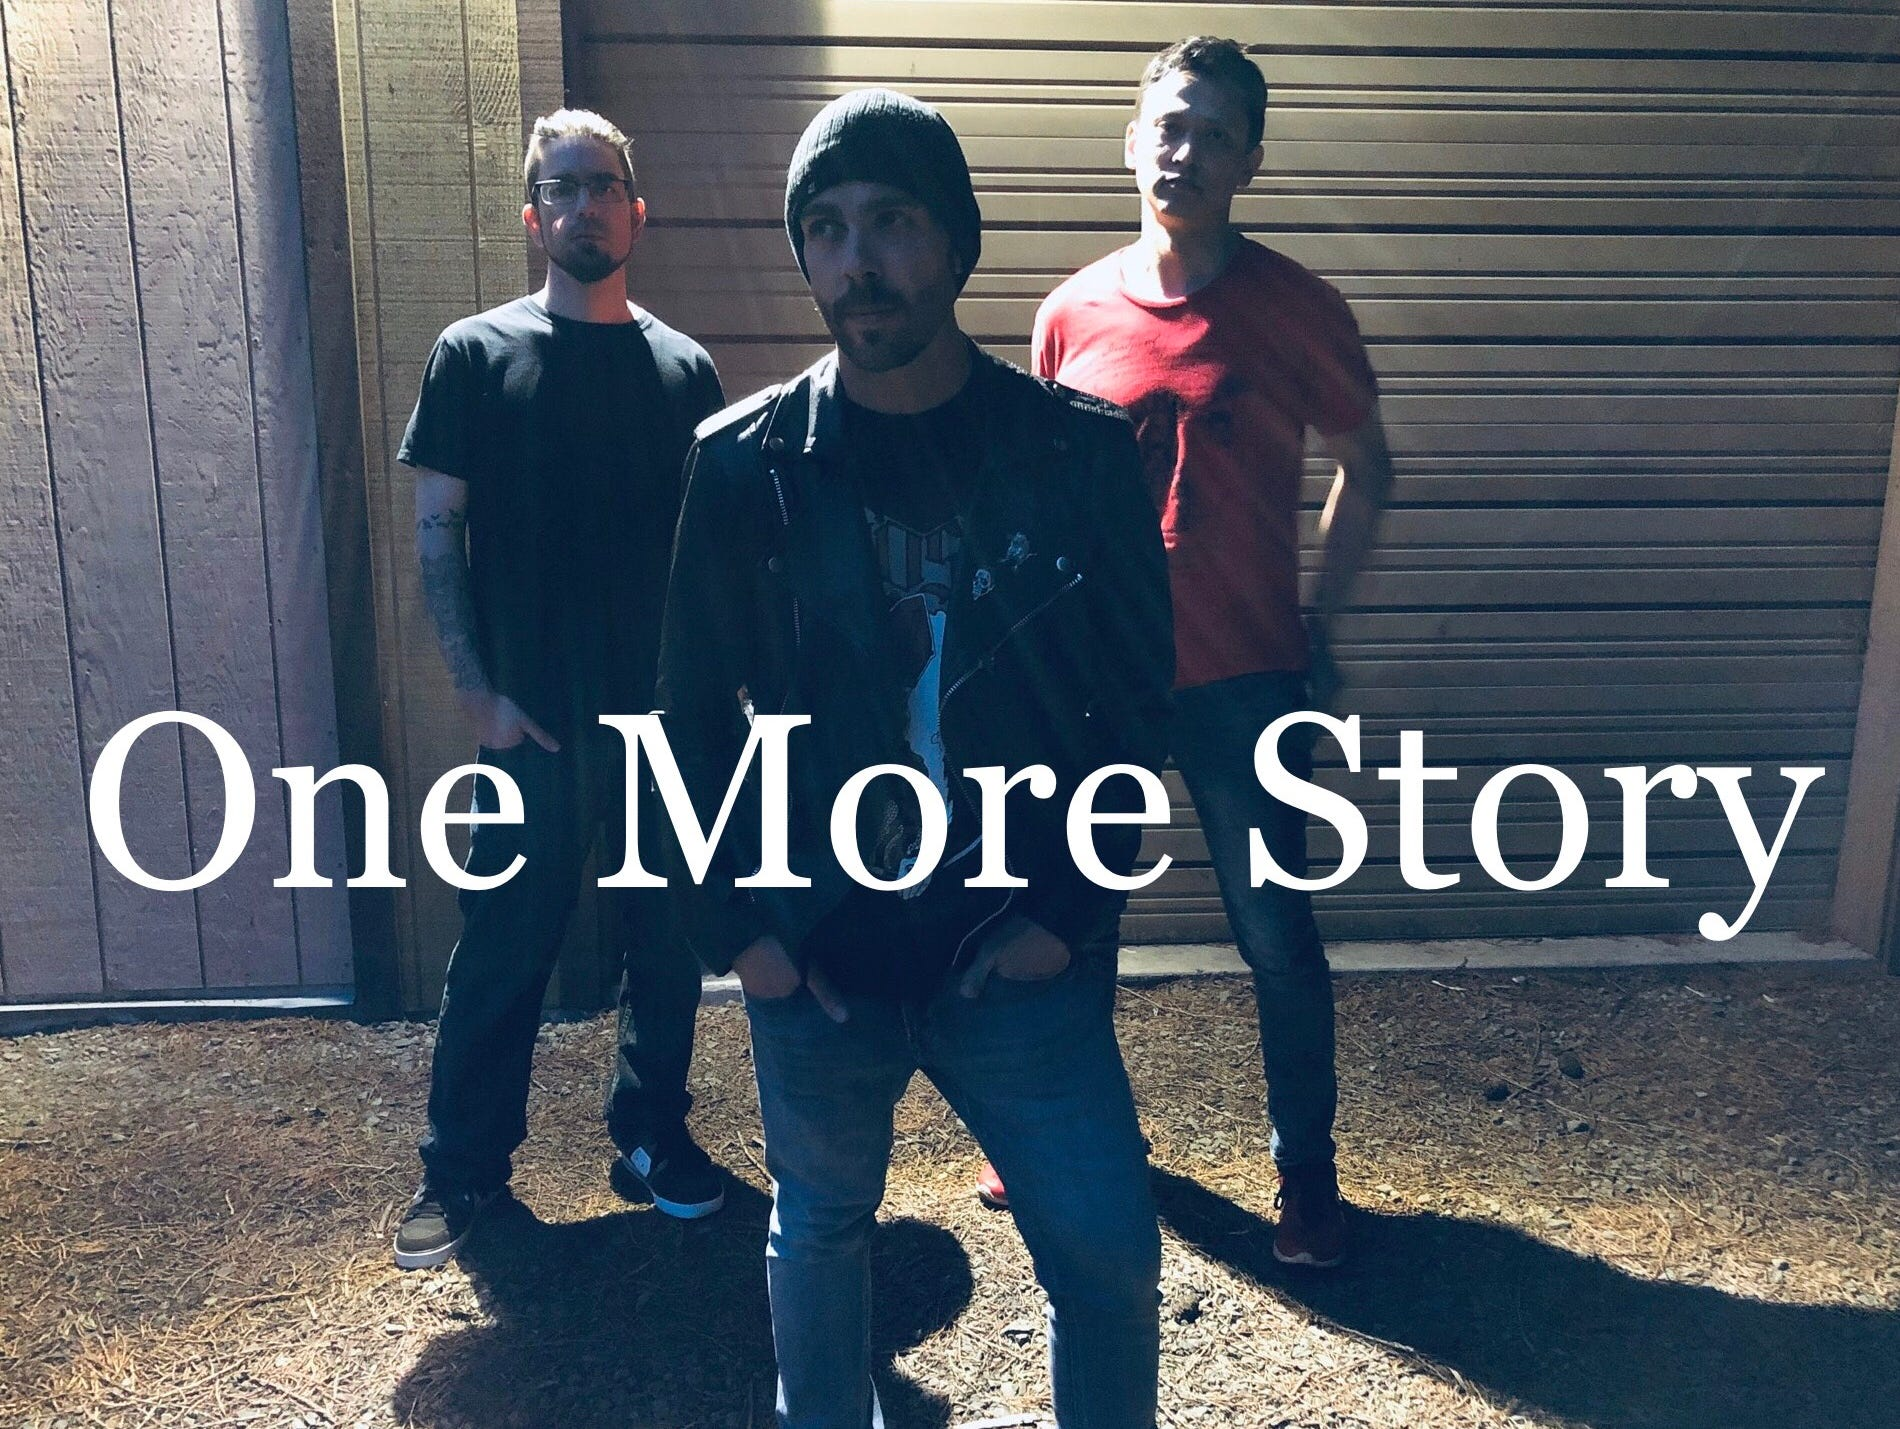 """EP Release: Salem-based alternative/rock bandOne More Story is celebrating the release of their EP, """"Prologue,"""" with a show, they will be joined byThe Arbor, 6 to 10 p.m. Thursday, May 30, Shotski's Eats and Venue, 1230 State St.facebook.com/events/329654654383974."""